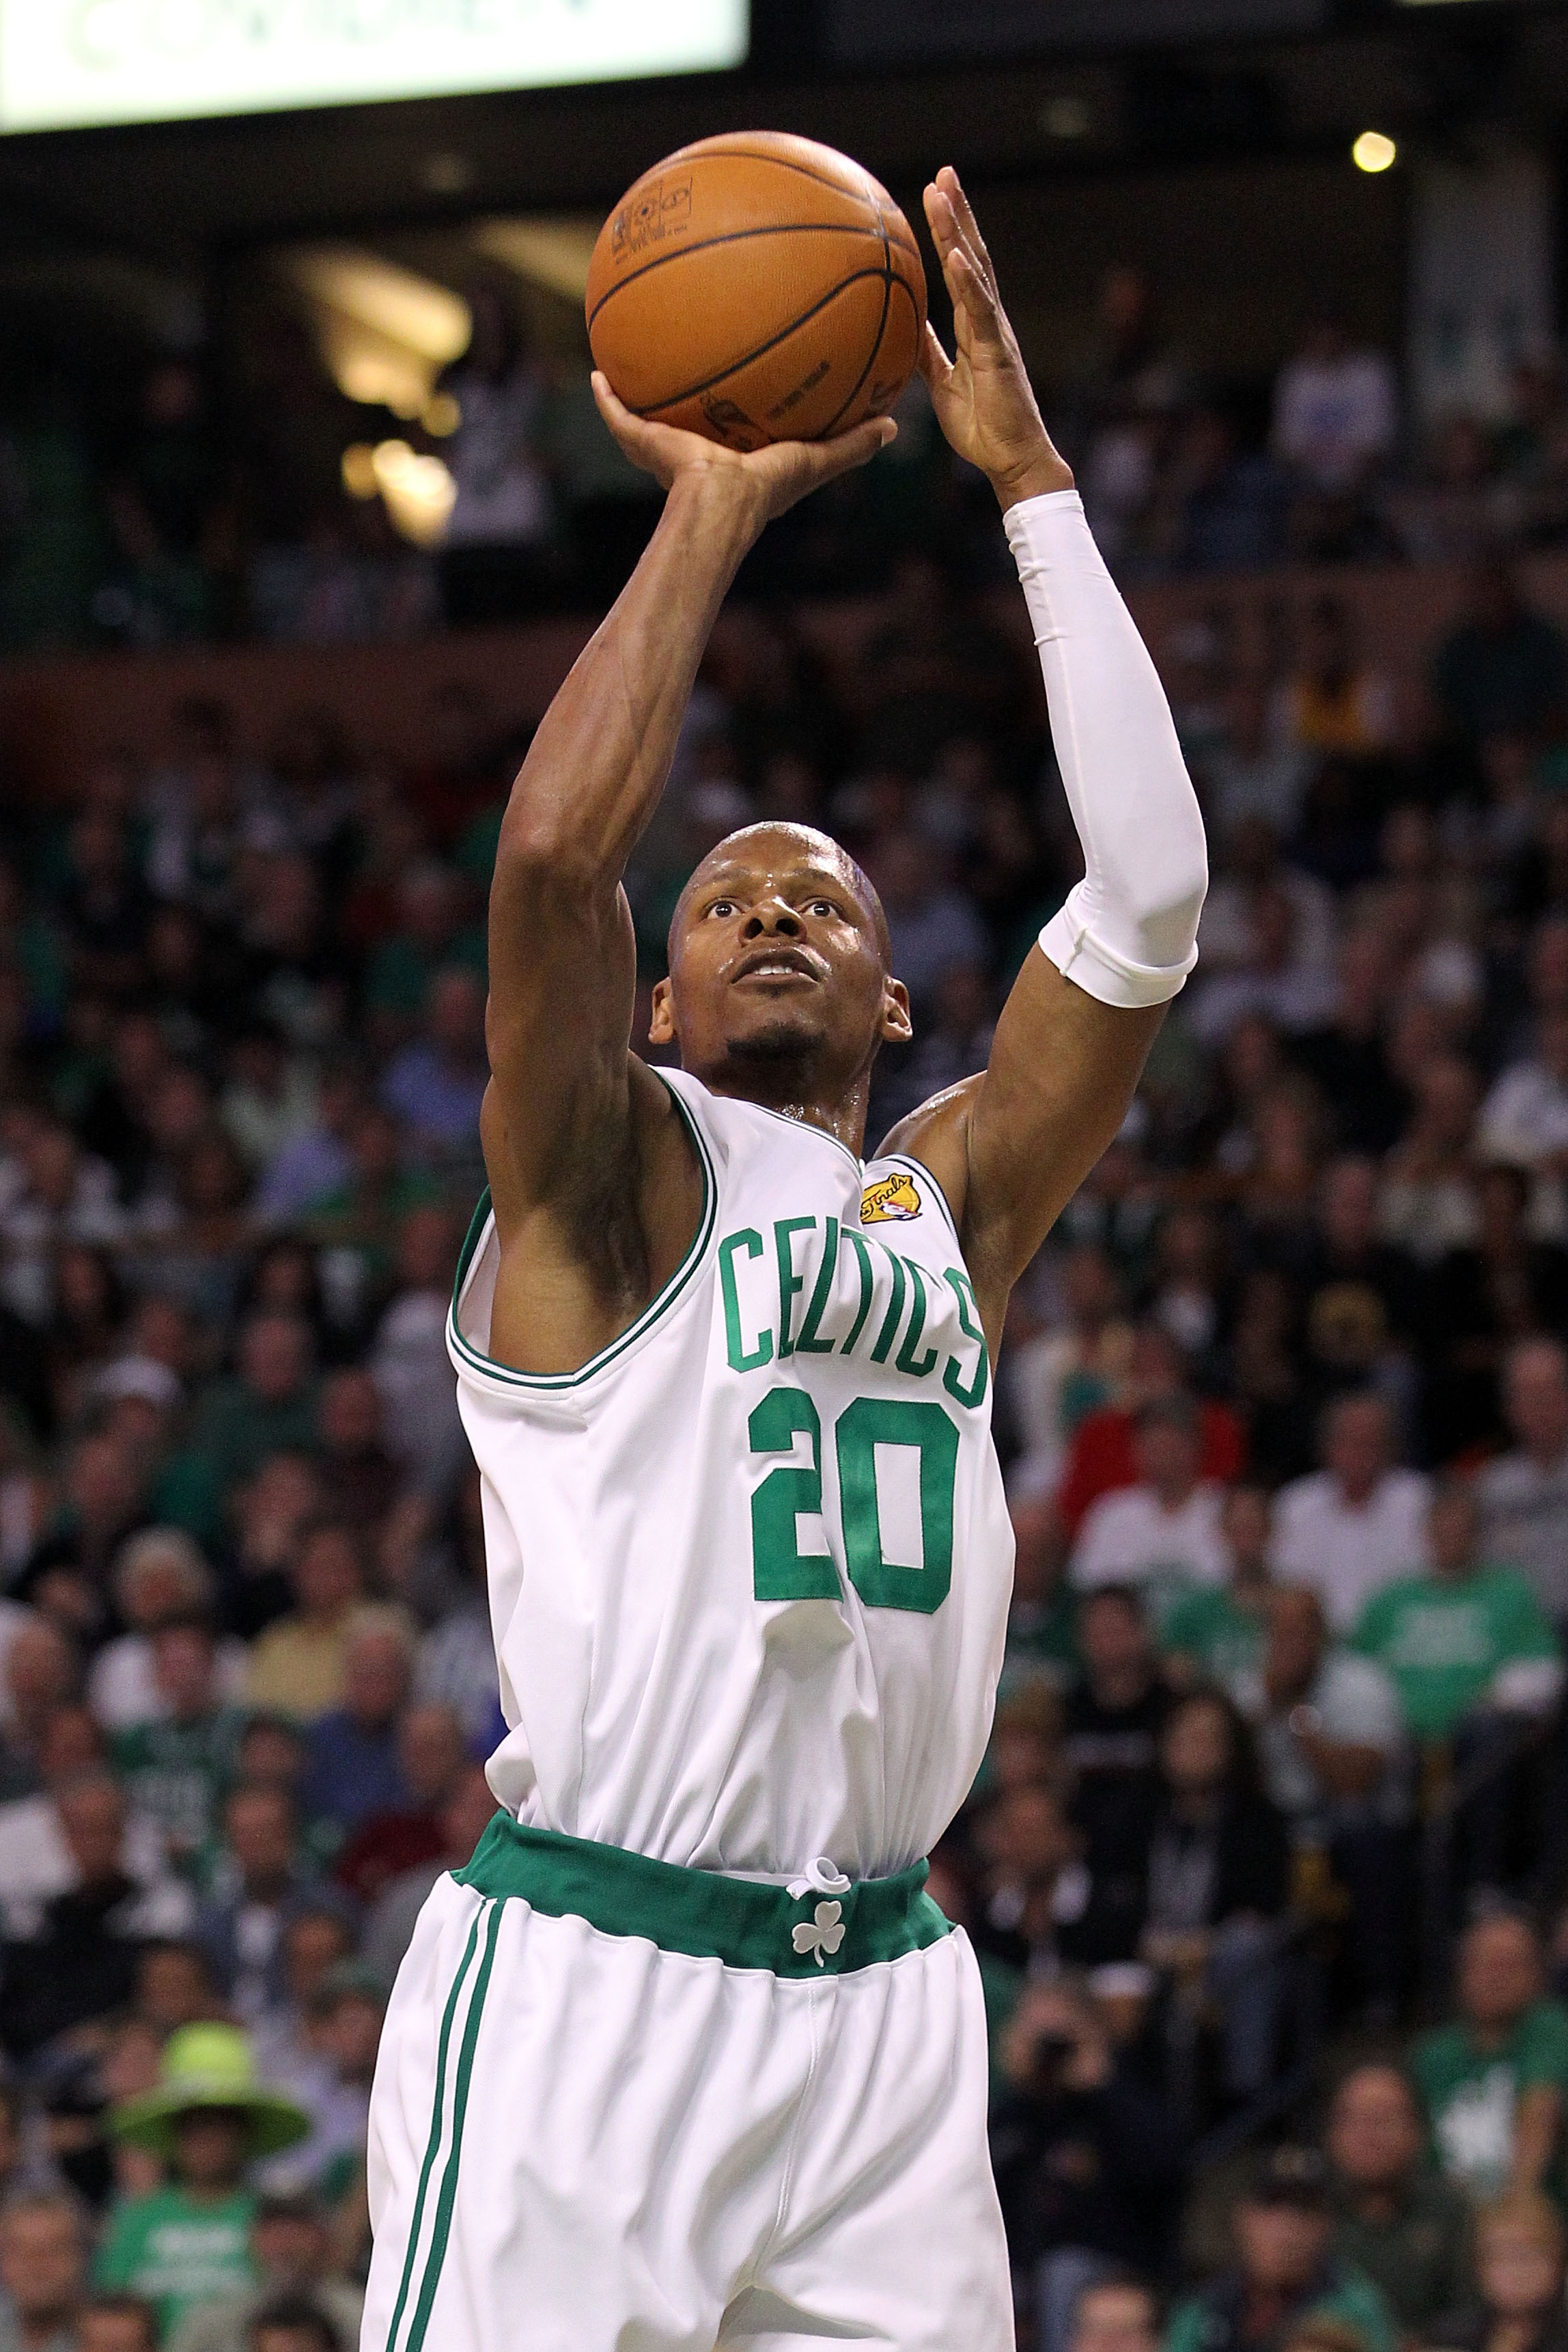 BOSTON - JUNE 13:  Ray Allen #20 of the Boston Celtics shoots against the Los Angeles Lakers during Game Five of the 2010 NBA Finals on June 13, 2010 at TD Garden in Boston, Massachusetts. The Celtics won 92-86. NOTE TO USER: User expressly acknowledges a